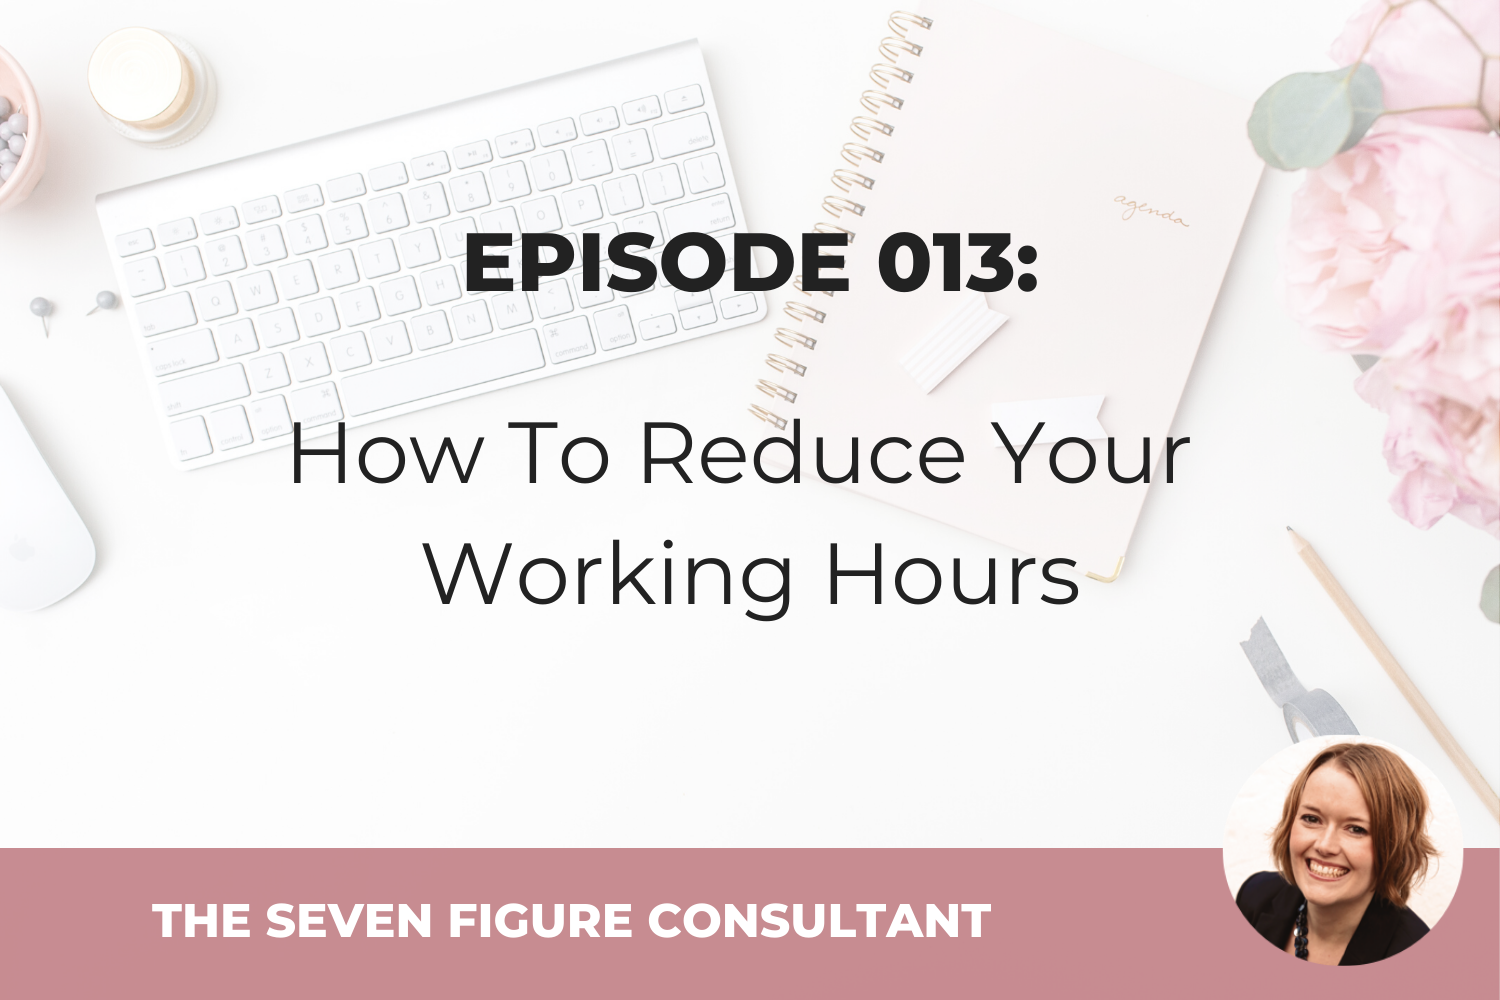 Episode 013: How To Reduce Your Working Hours